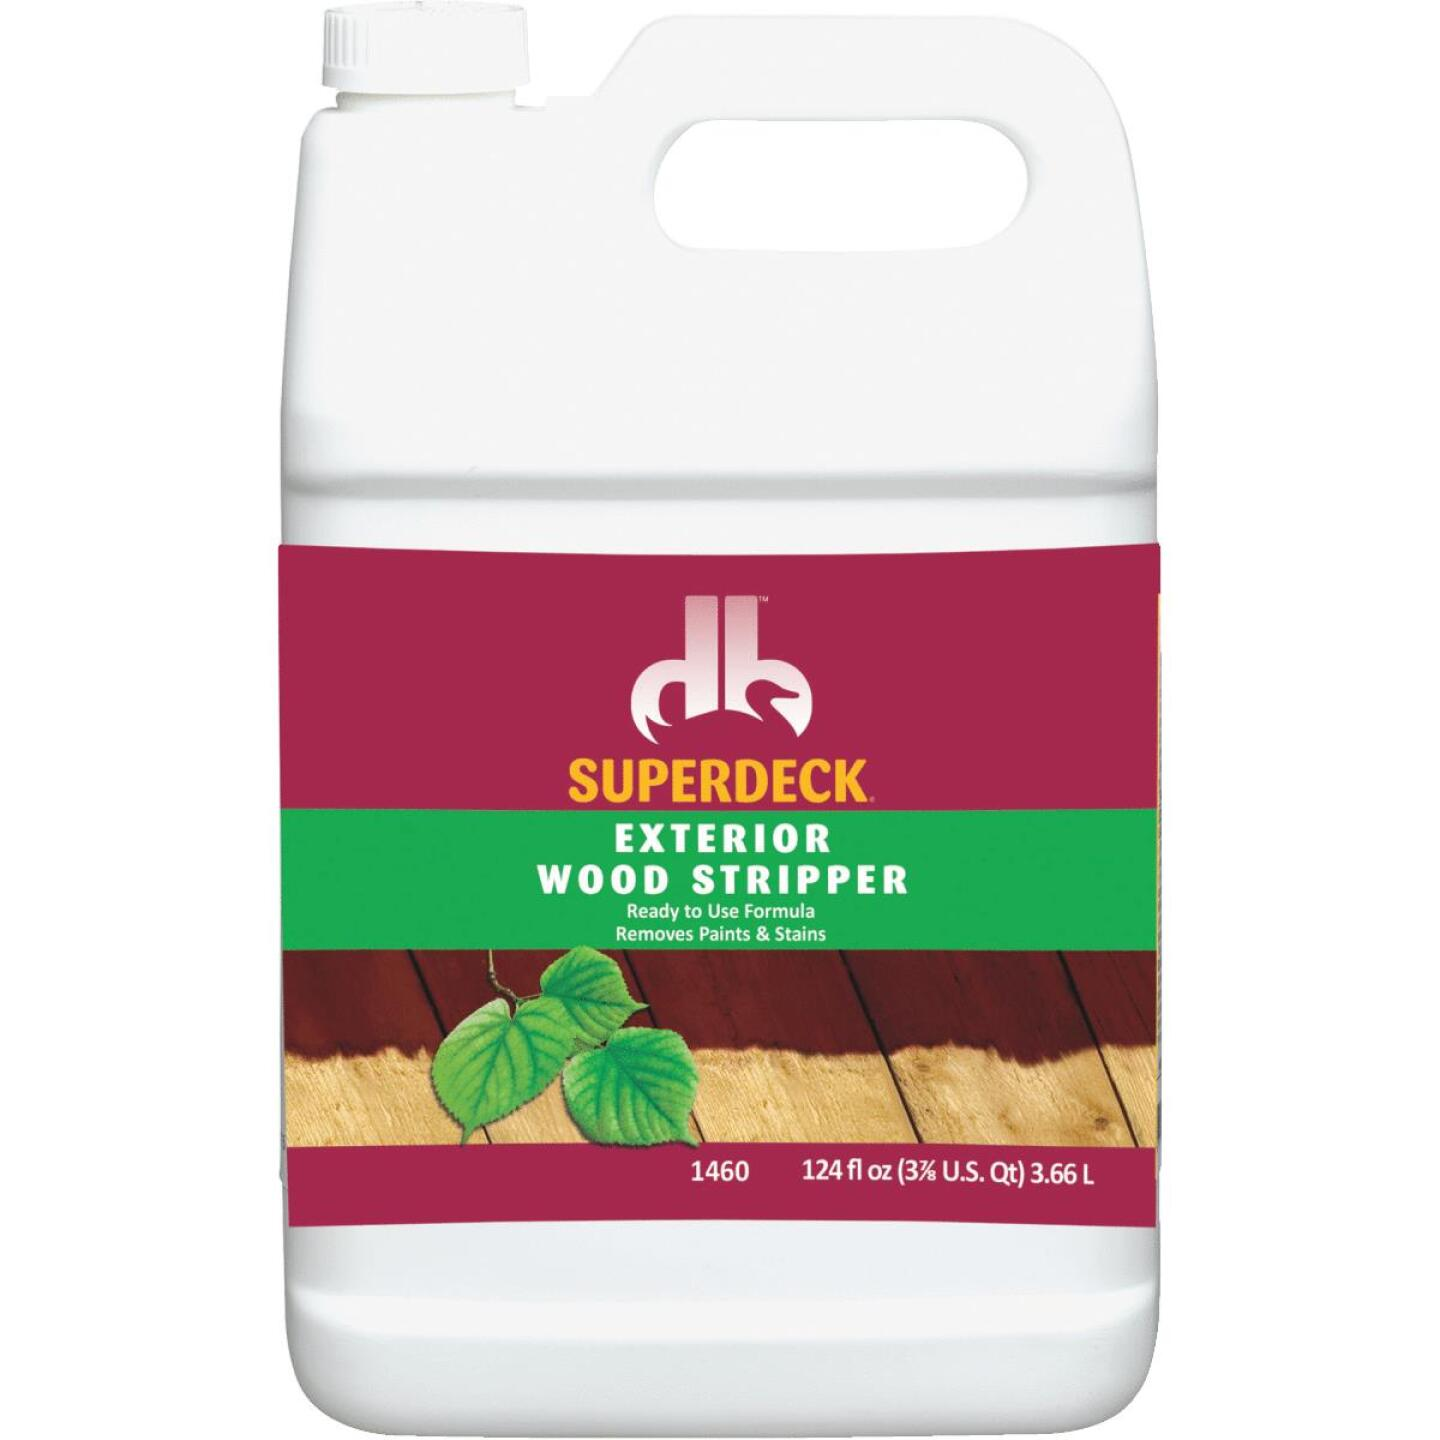 Duckback SUPERDECK 1 Gal. Exterior Stain & Paint Remover Image 1